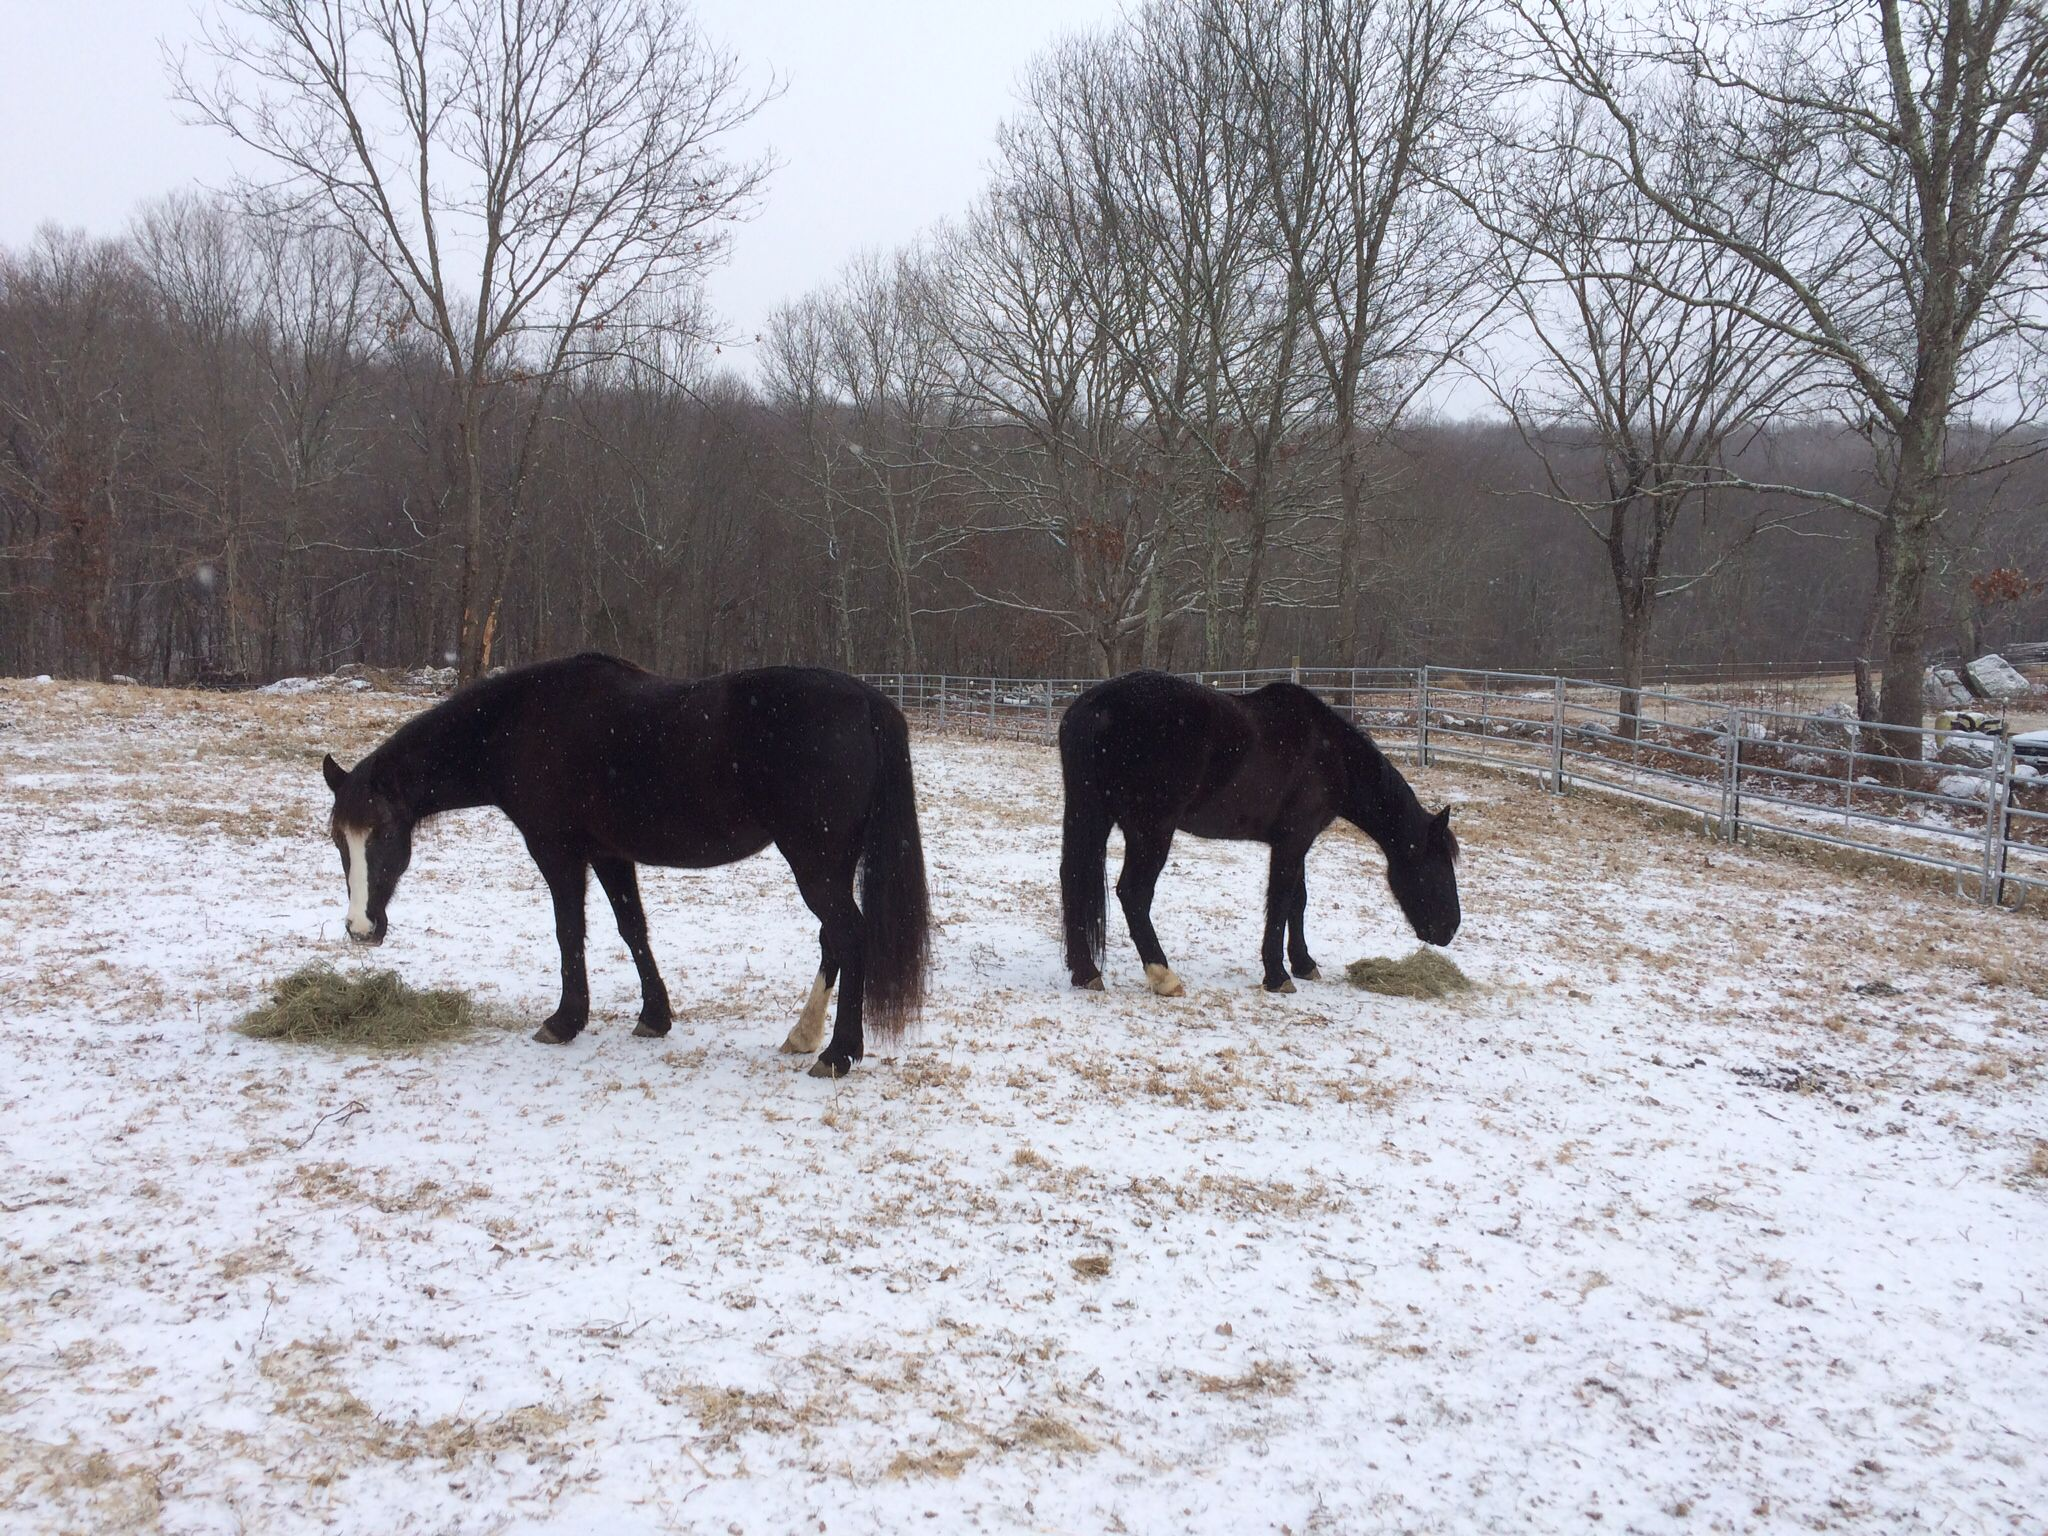 Snowy day with the horses